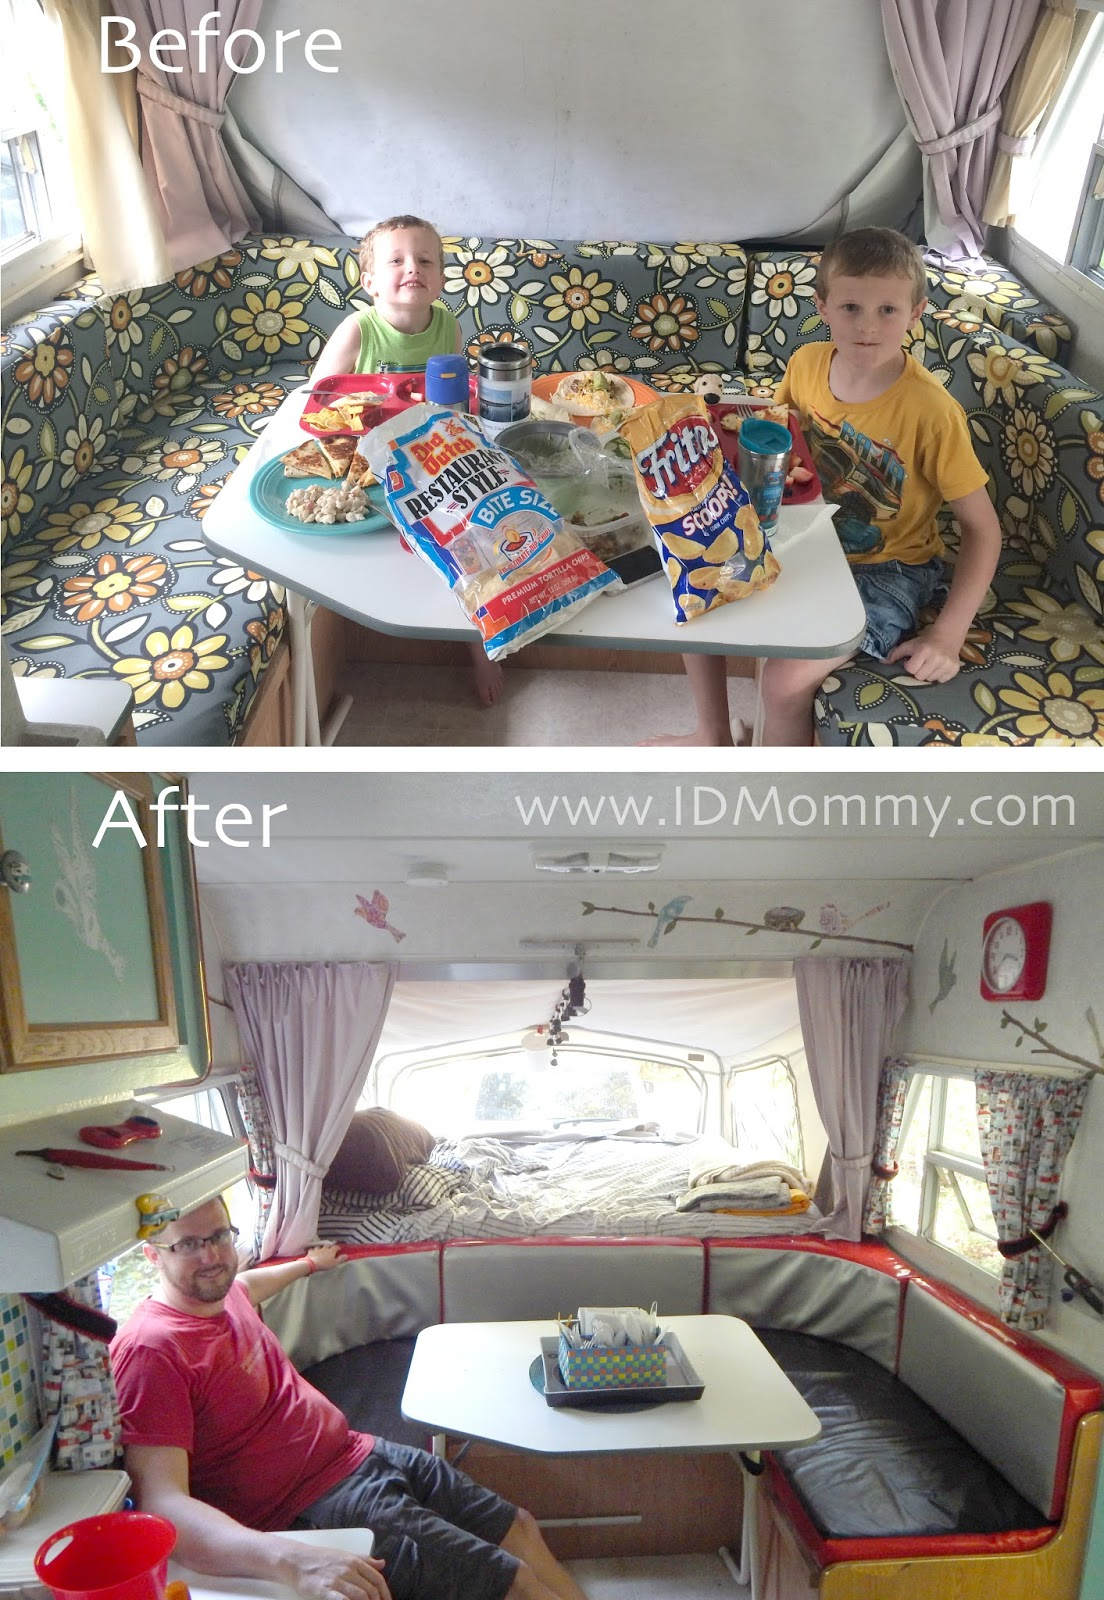 ID Mommy IDMommy Projects Our Camper Remodel